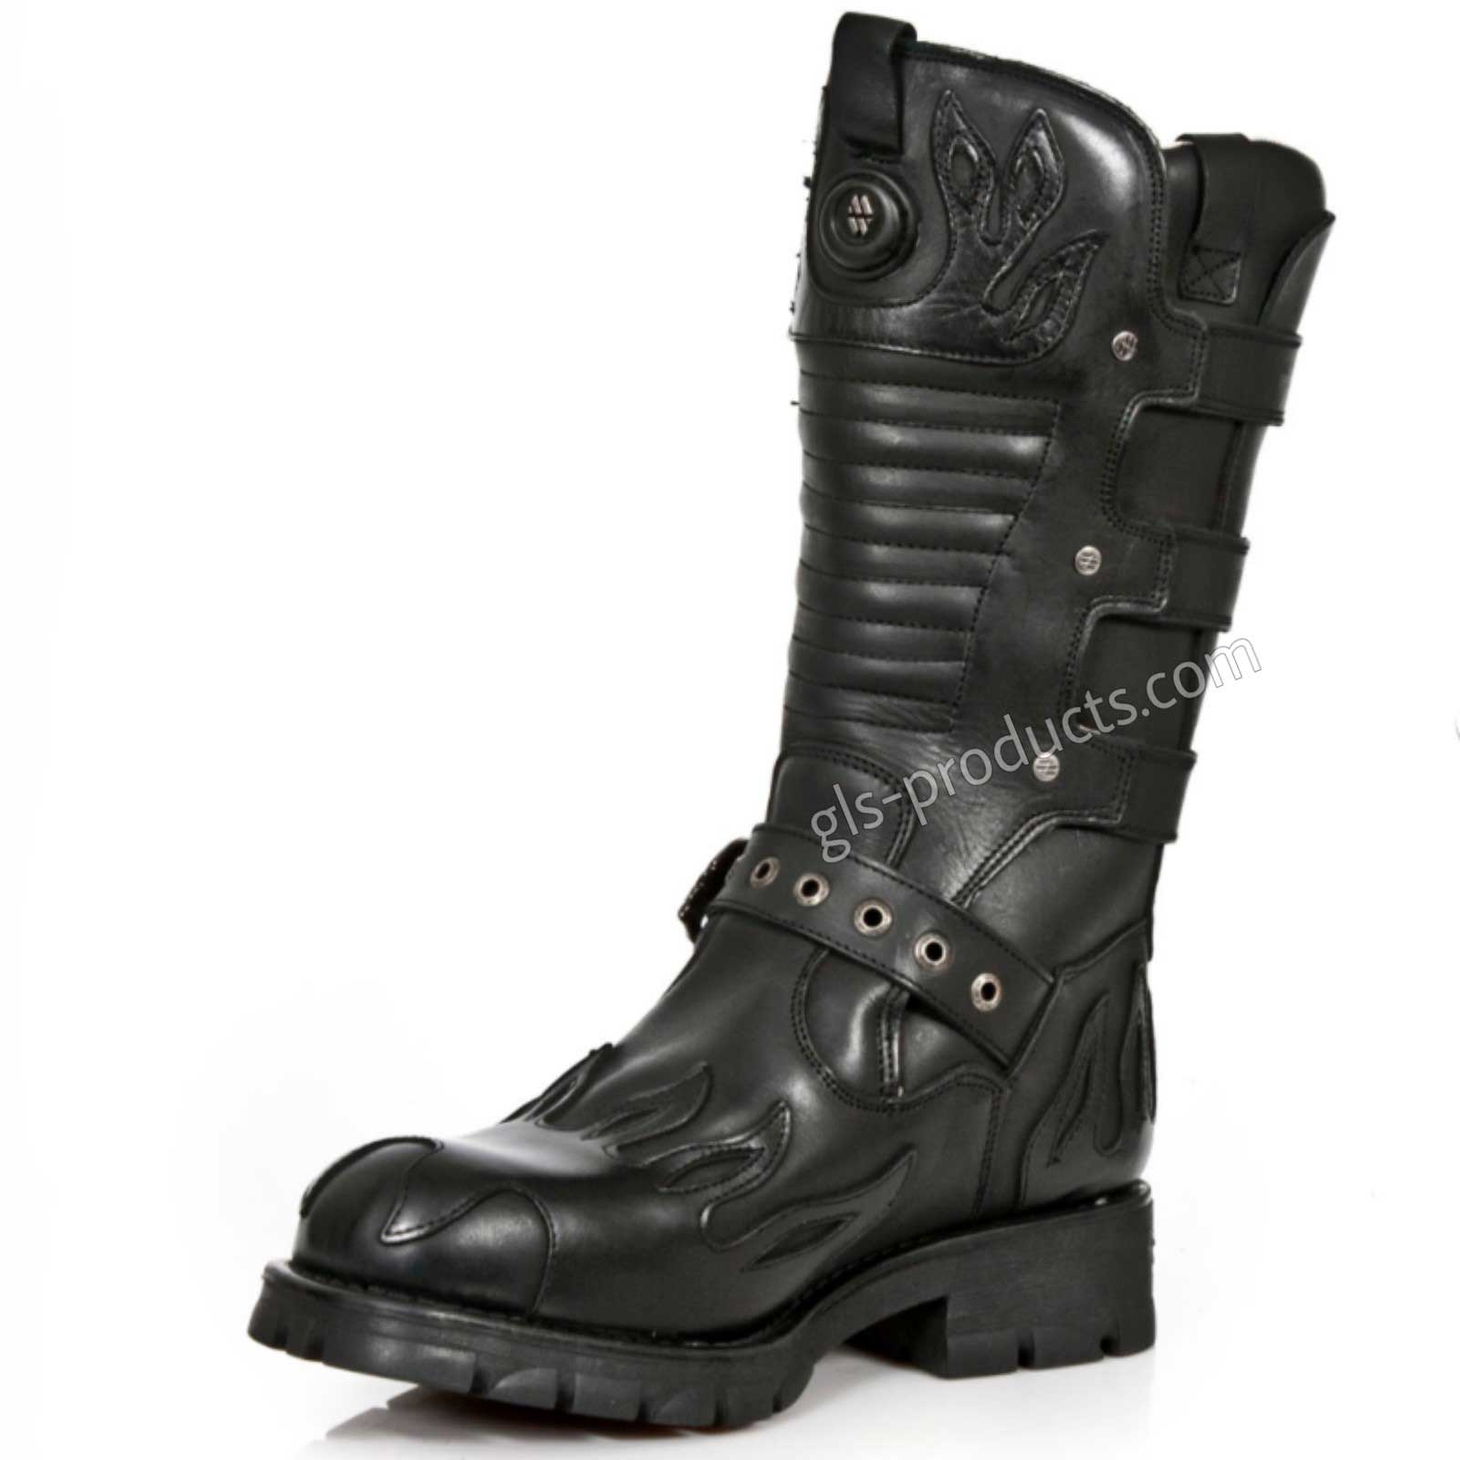 New Rock Biker Boots M 7603-C2 – Picture 3